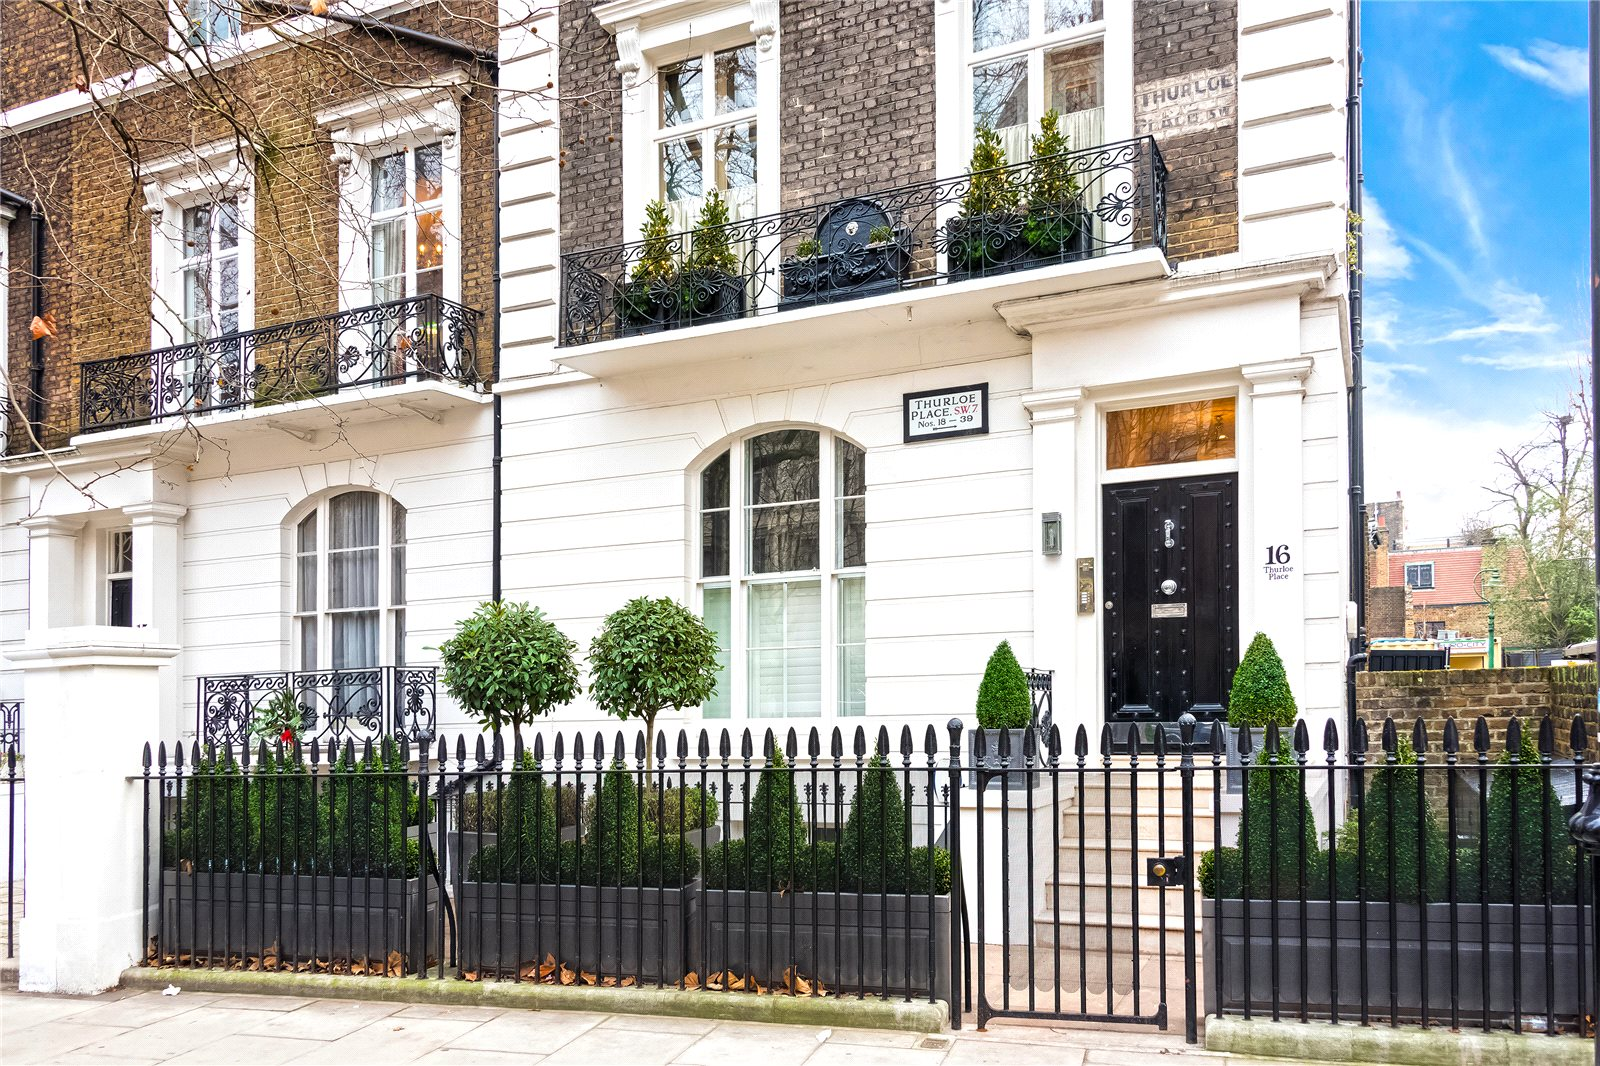 Apartamentos para Venda às Thurloe Place, South Kensington, SW7 South Kensington, Inglaterra